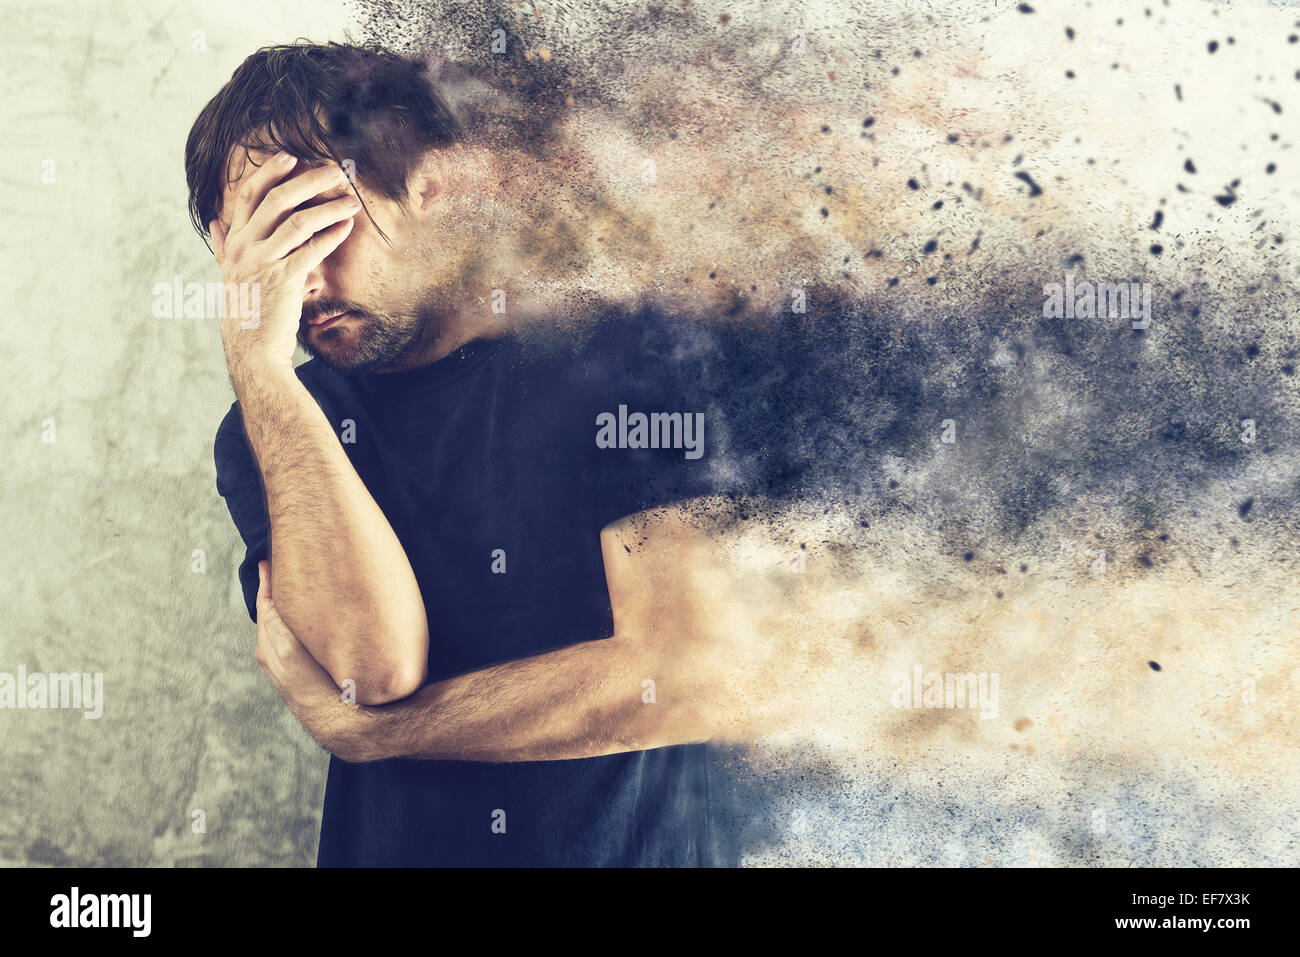 Depressed Man with Problems holding hand over his Face and Crying, occupied by Mind Blowing Thoughts - Stock Image